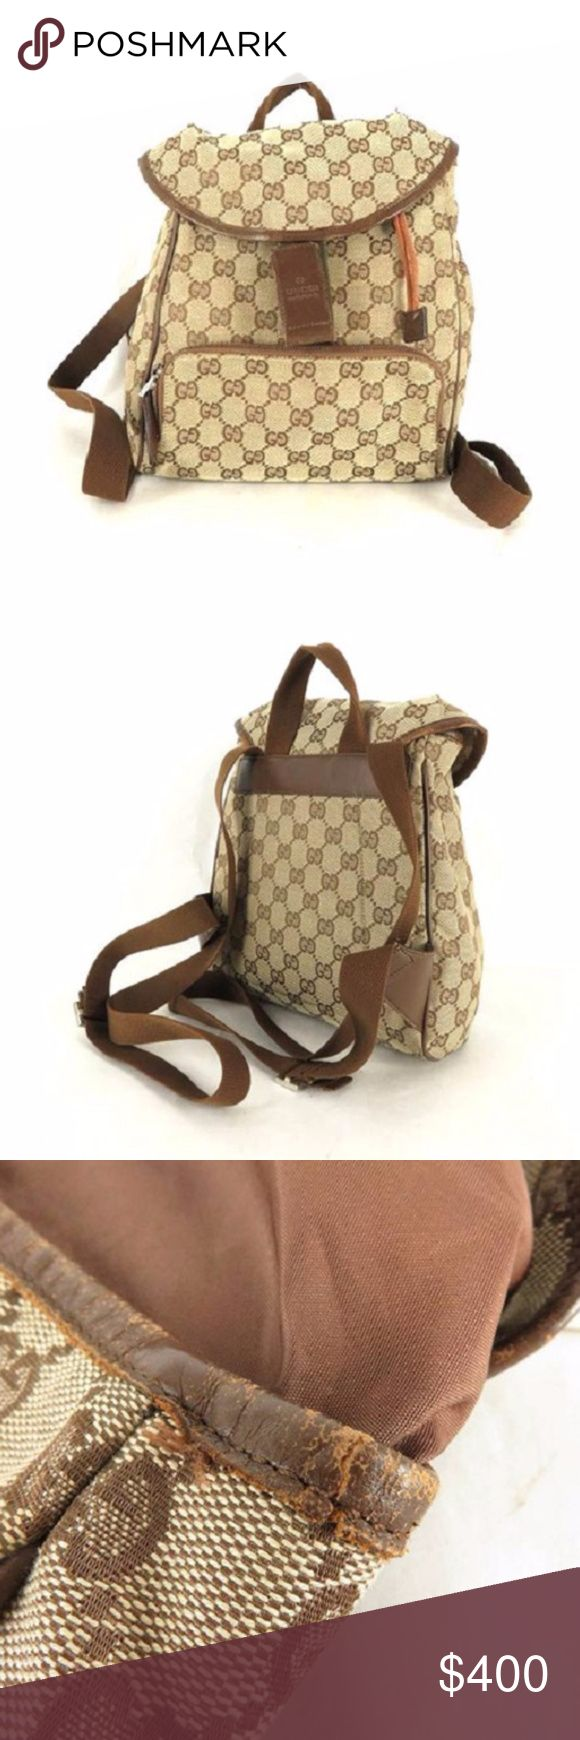 "Authentic Gucci GG Monogram Brown Backpack Authentic Gucci GG Monogram Brown canvas And Leather mini backpack   Measures:  L:9"" W:4"" H:10""           Condition: 7/10 some signs of use.. see pics. . Gucci Bags Backpacks"